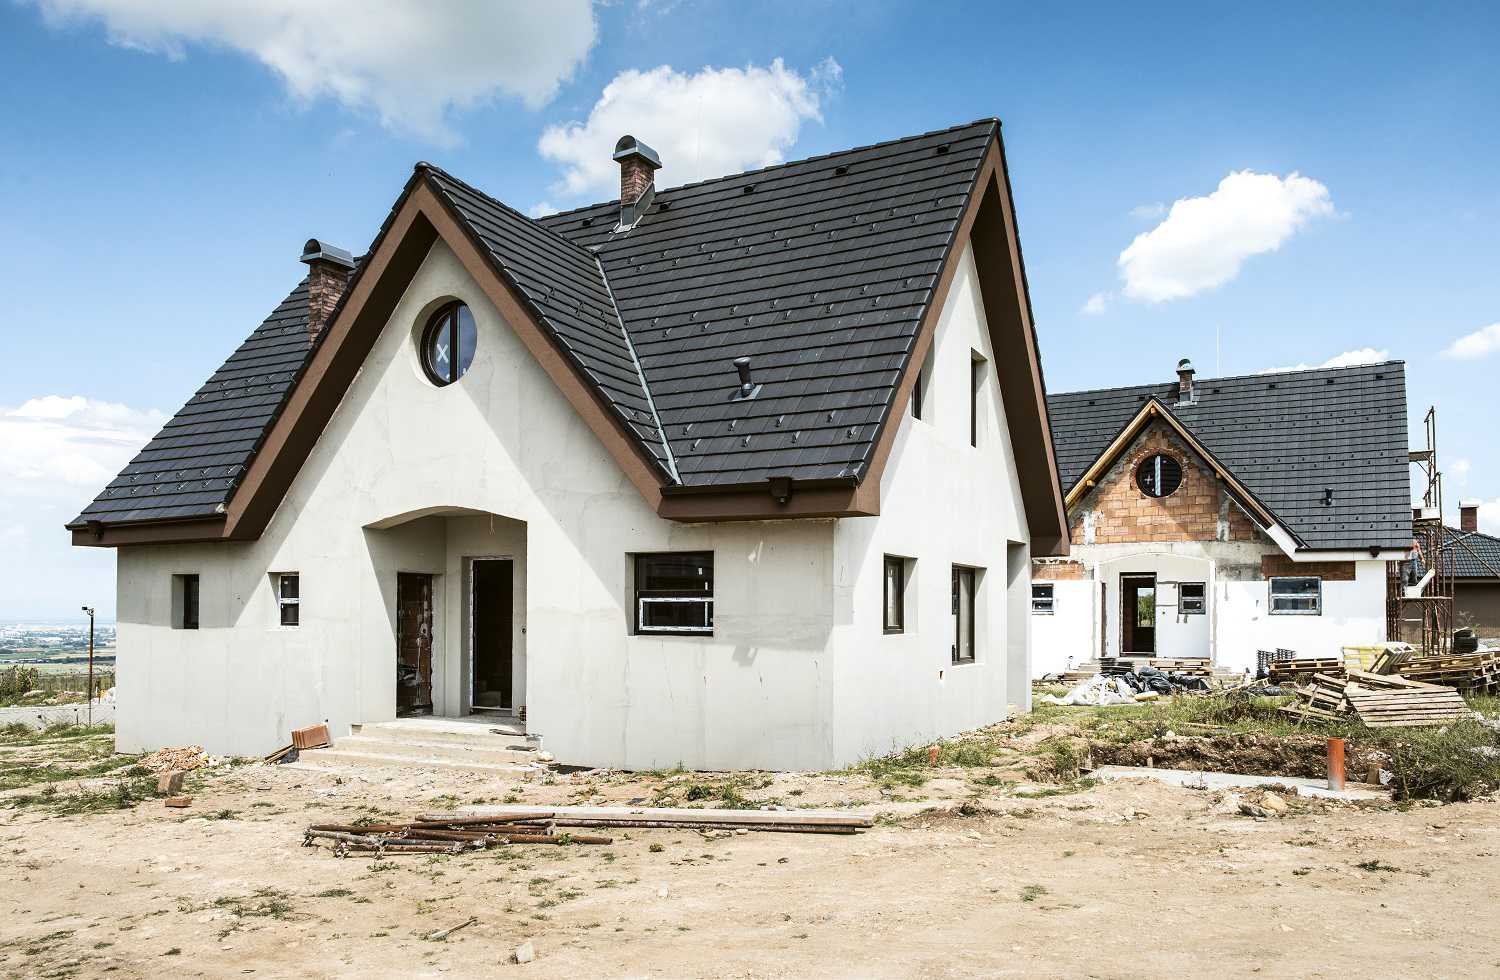 What Is The Roofing Material And How To Choose The Right One For Home